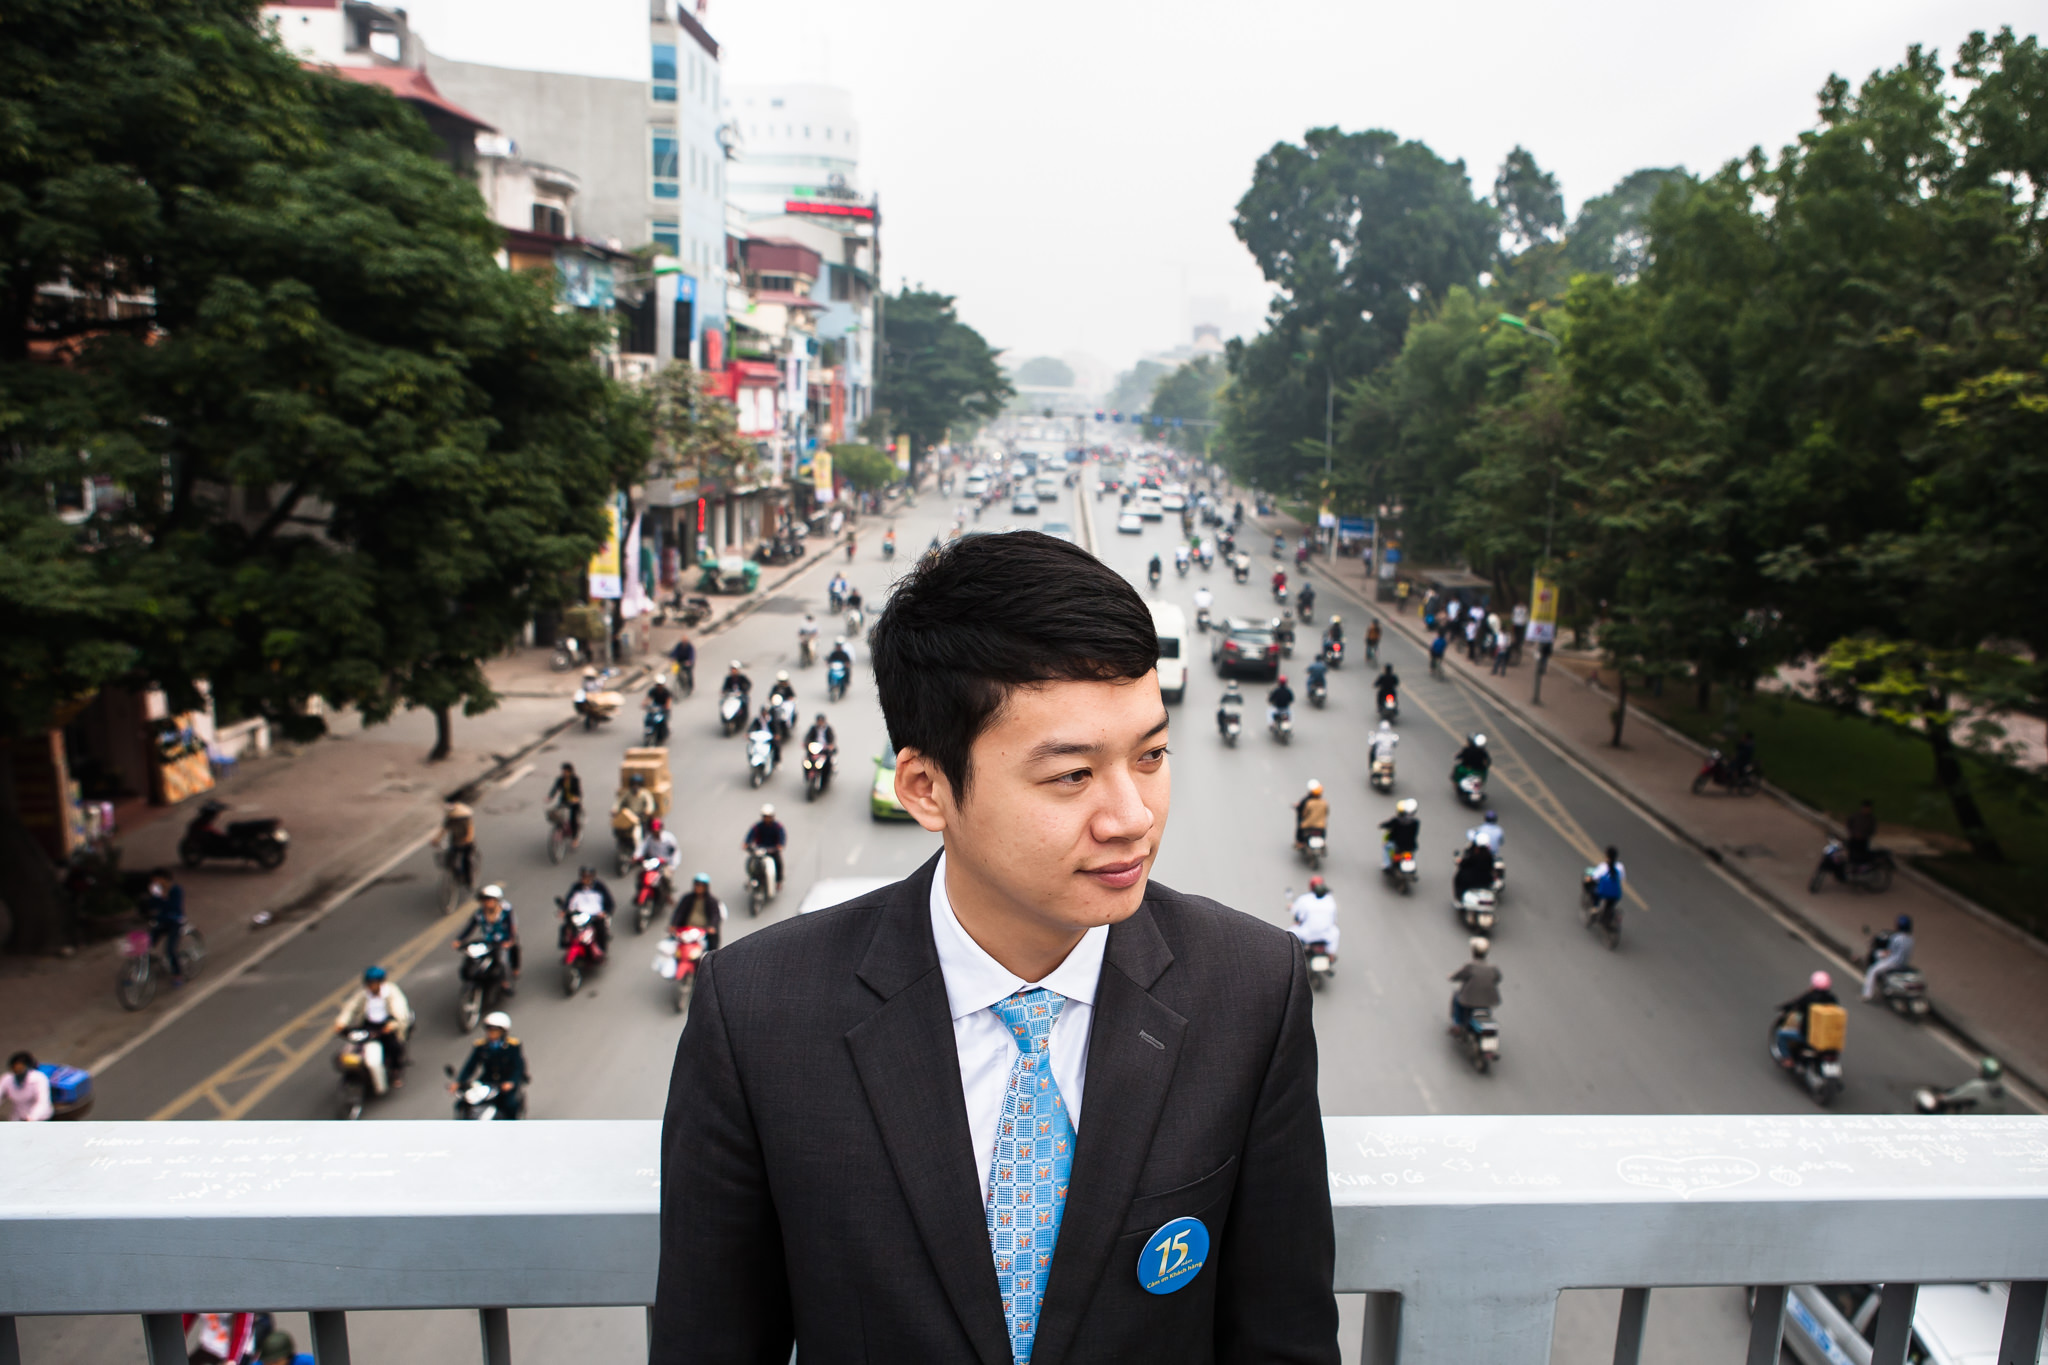 Corporate Portrait Photography in Hanoi  for VIB's Annual Report | Hanoi Photographer